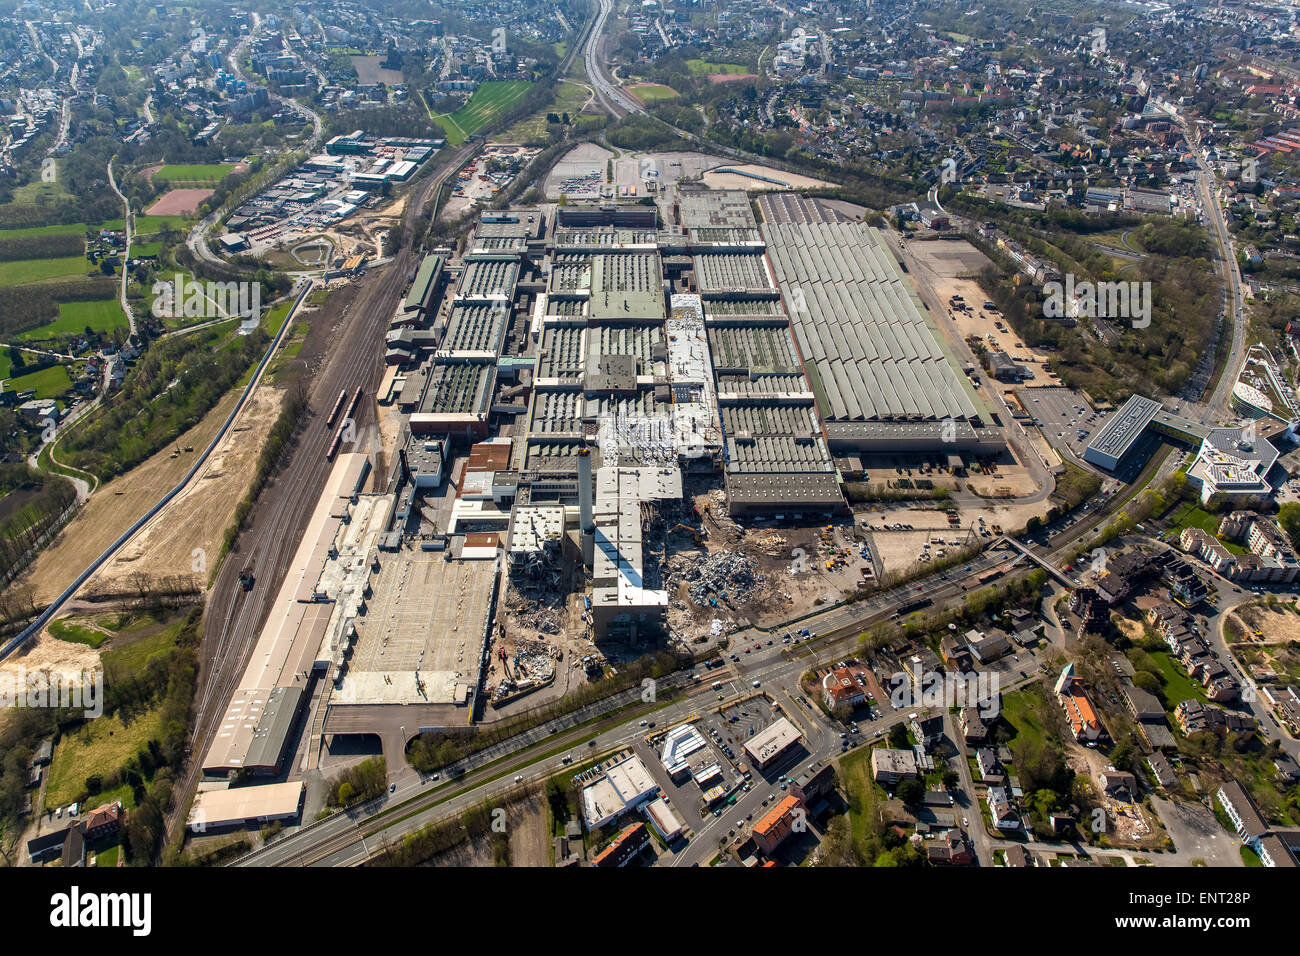 OPEL plant 1, demolition, Bochum, Ruhr district, Germany - Stock Image